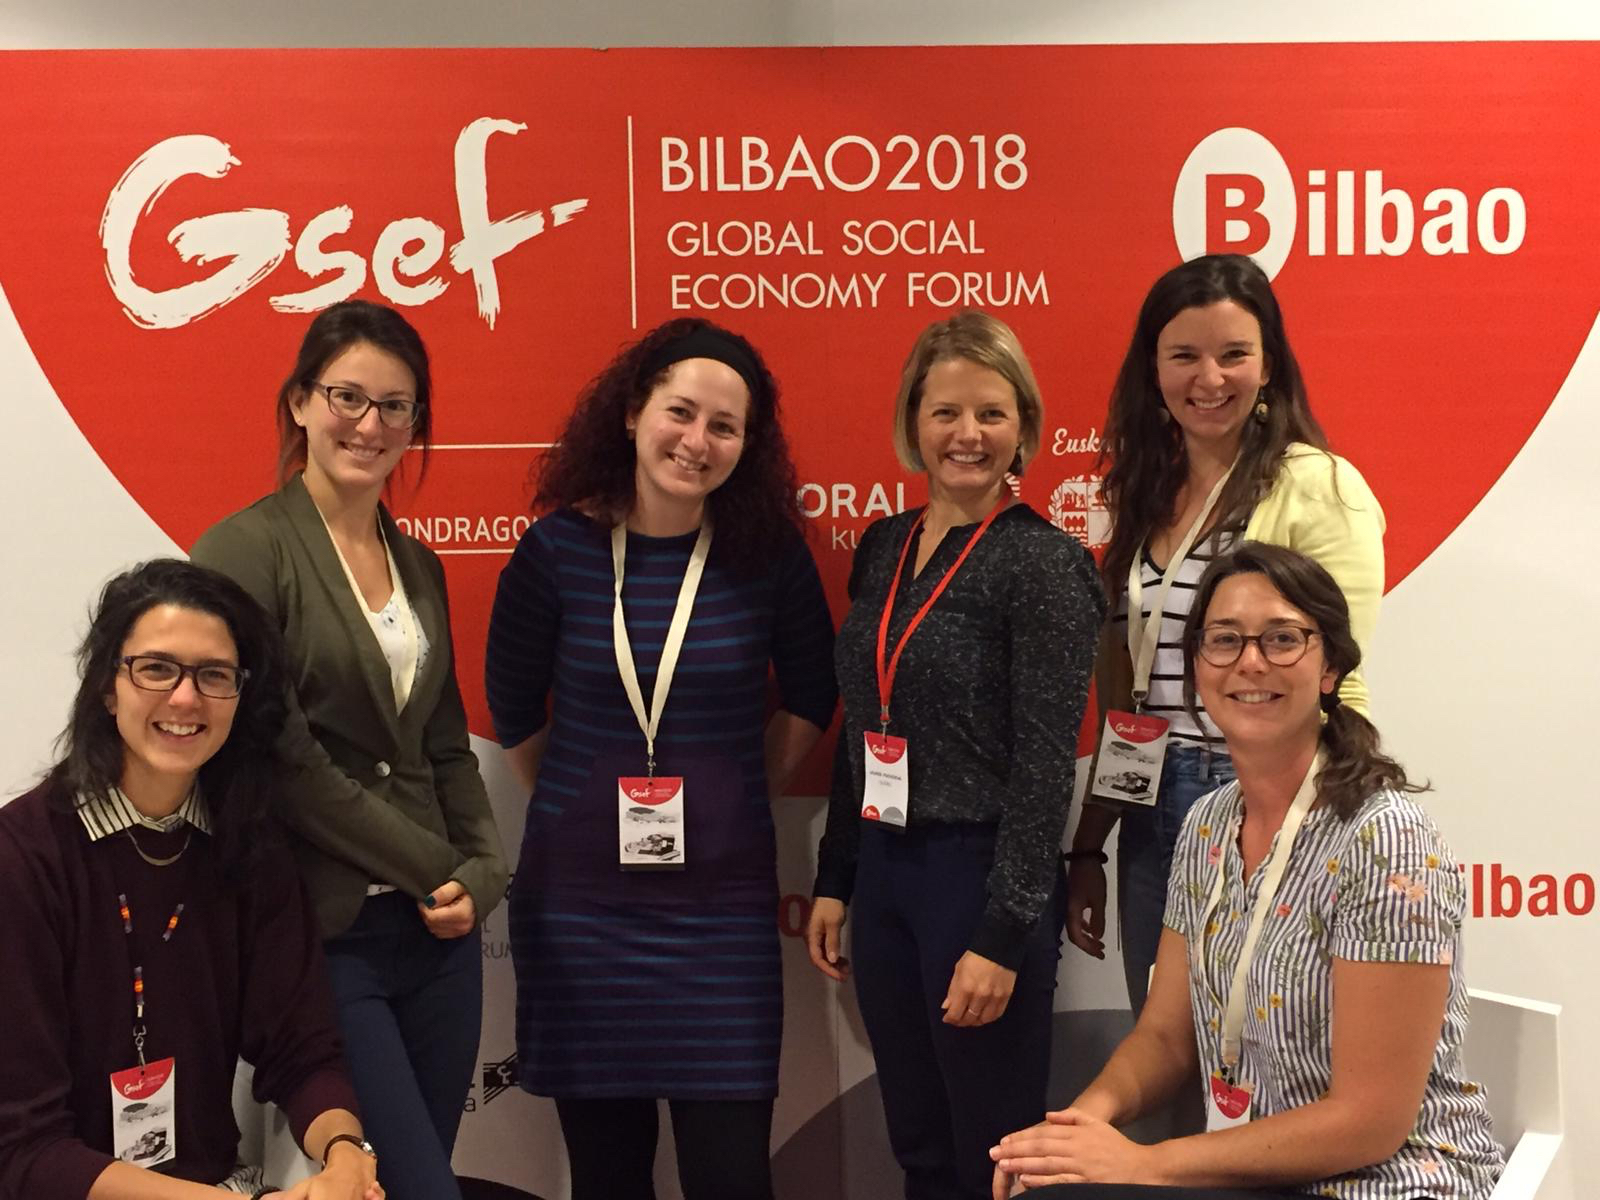 GSEF 2018 - Global Social Economy Forum, édition 2018 à Bilbao